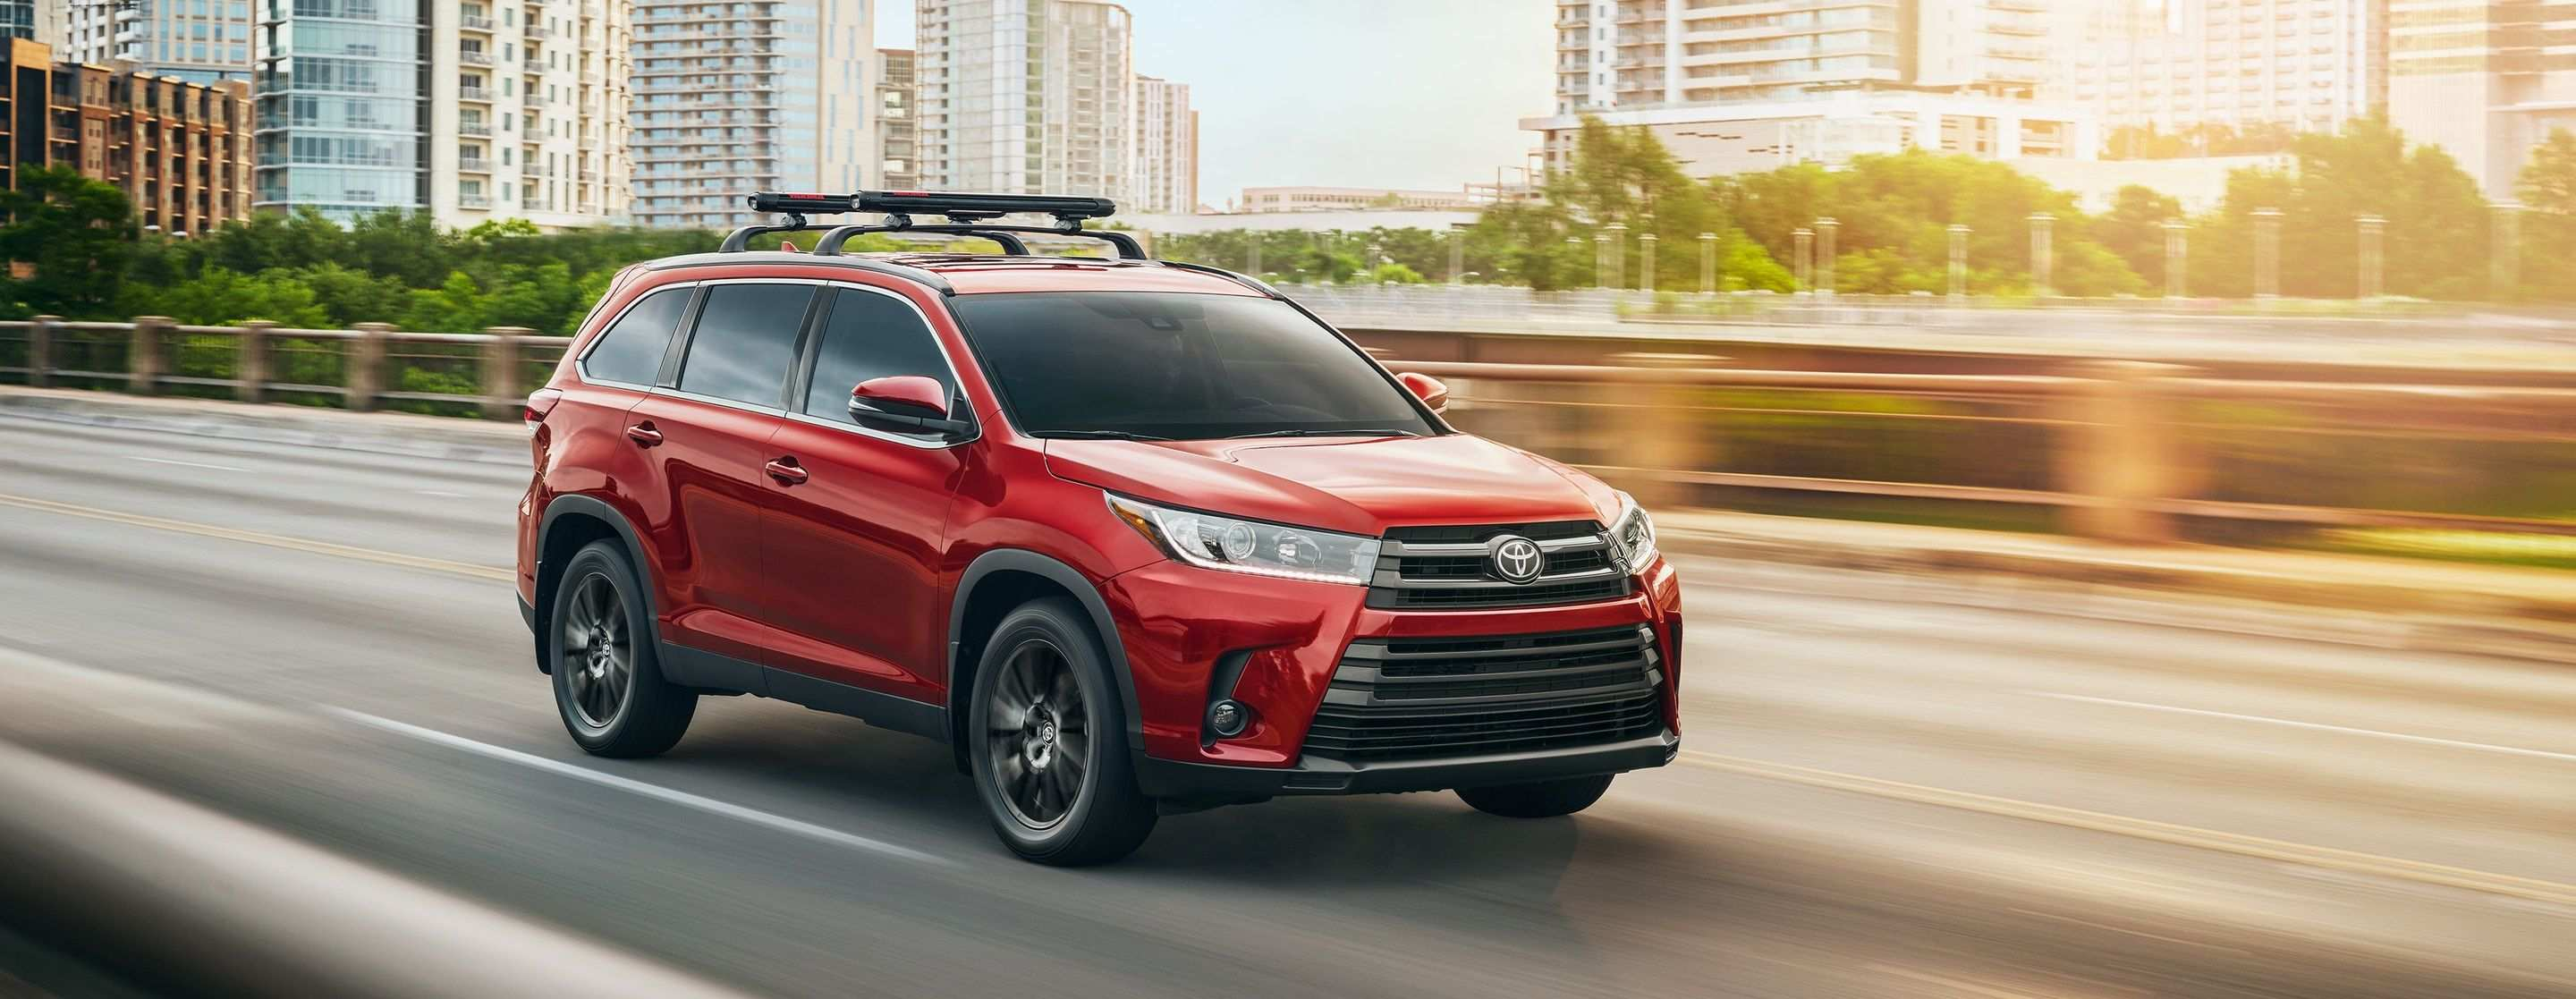 83 A The Toyota Highlander 2019 Redesign Concept Speed Test